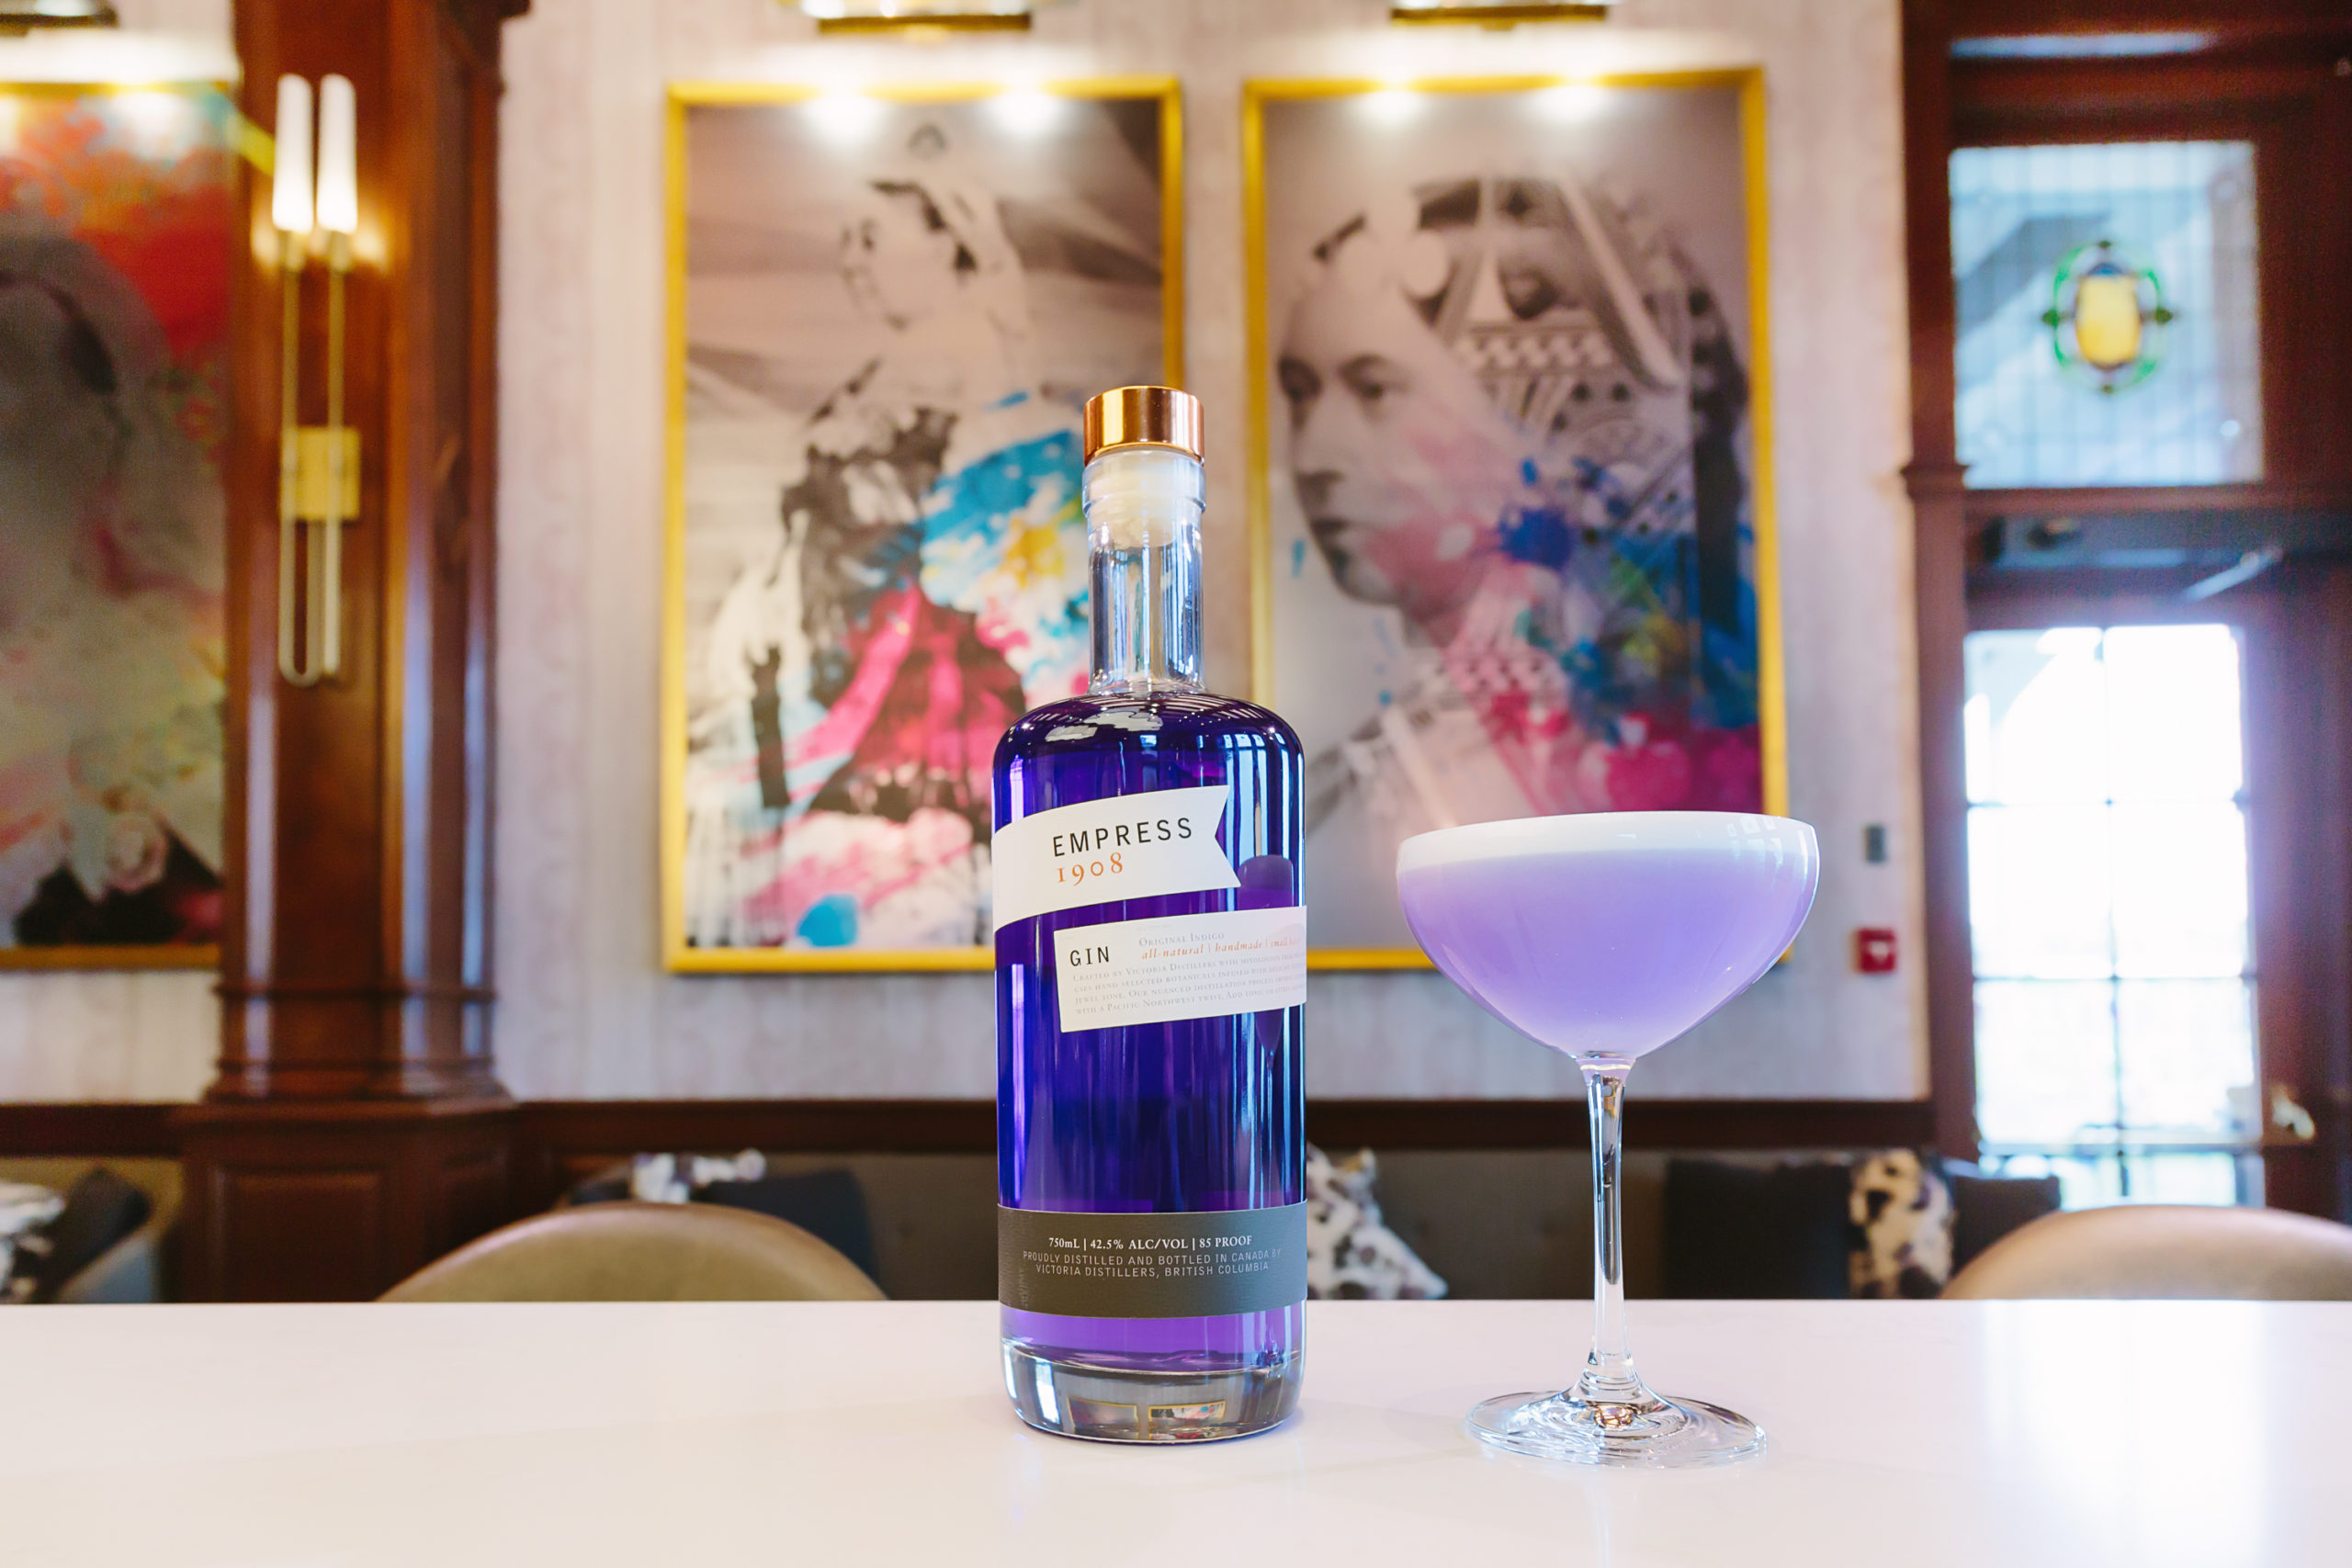 Empress Gin bottle and cocktail